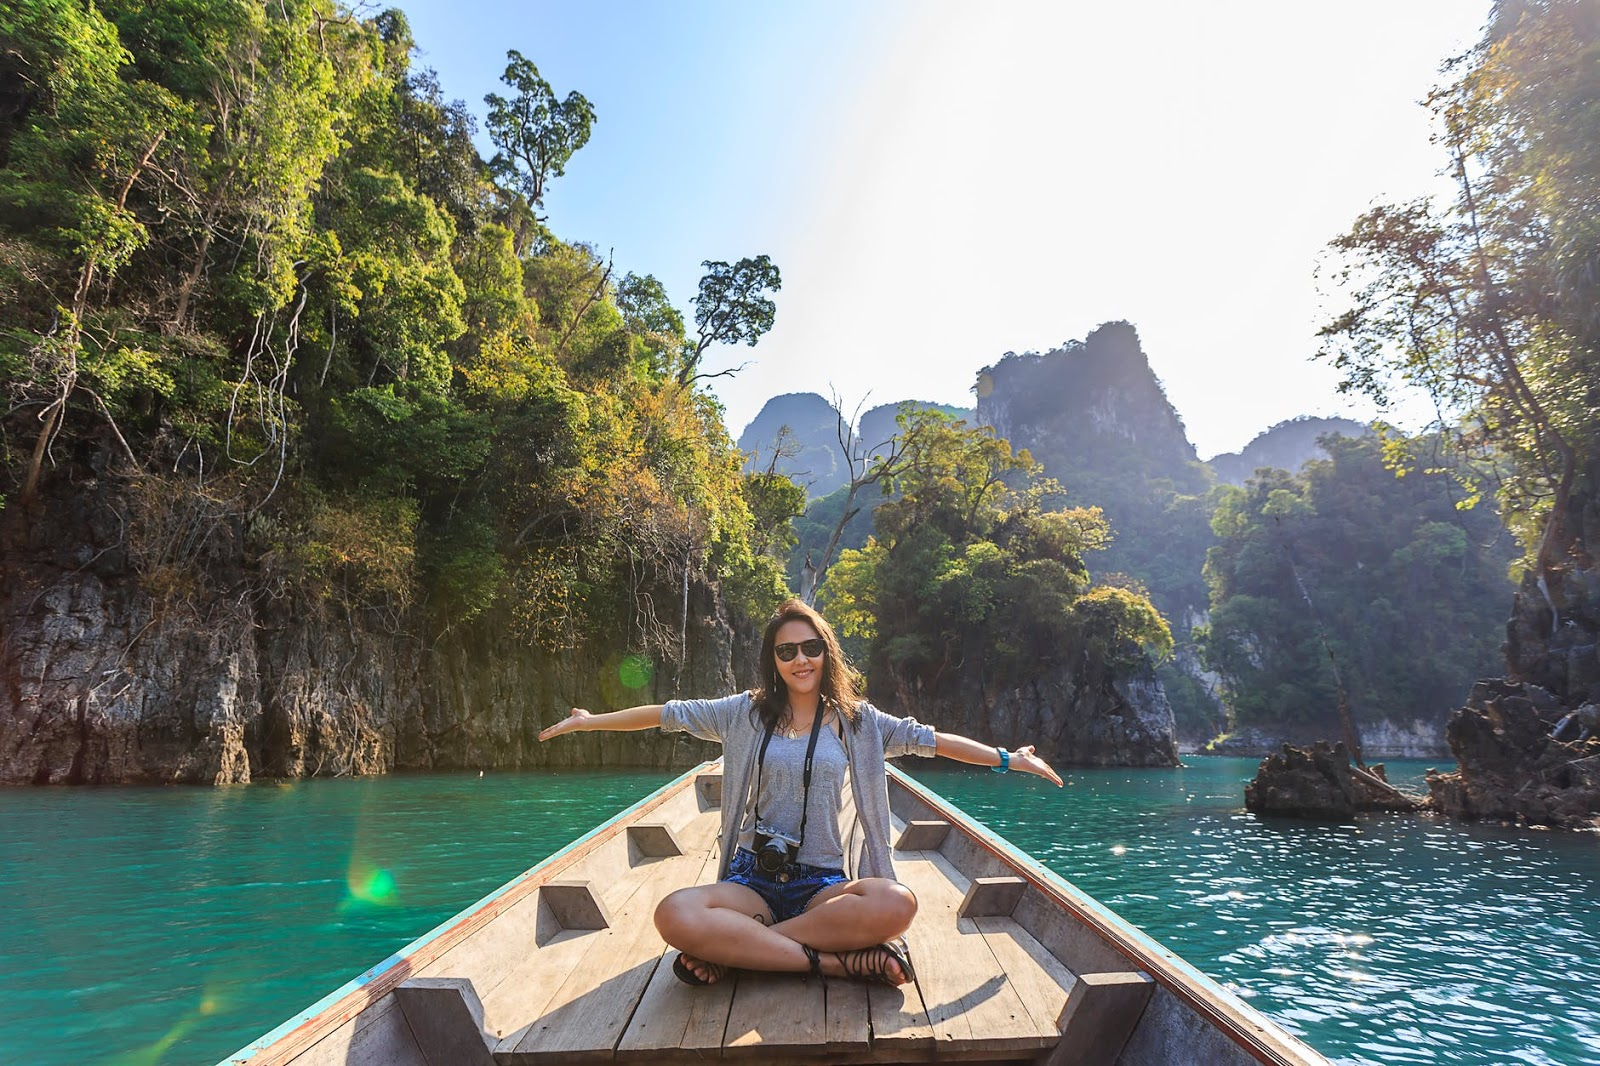 Best Travel Hashtags For Instagram To Get More Likes